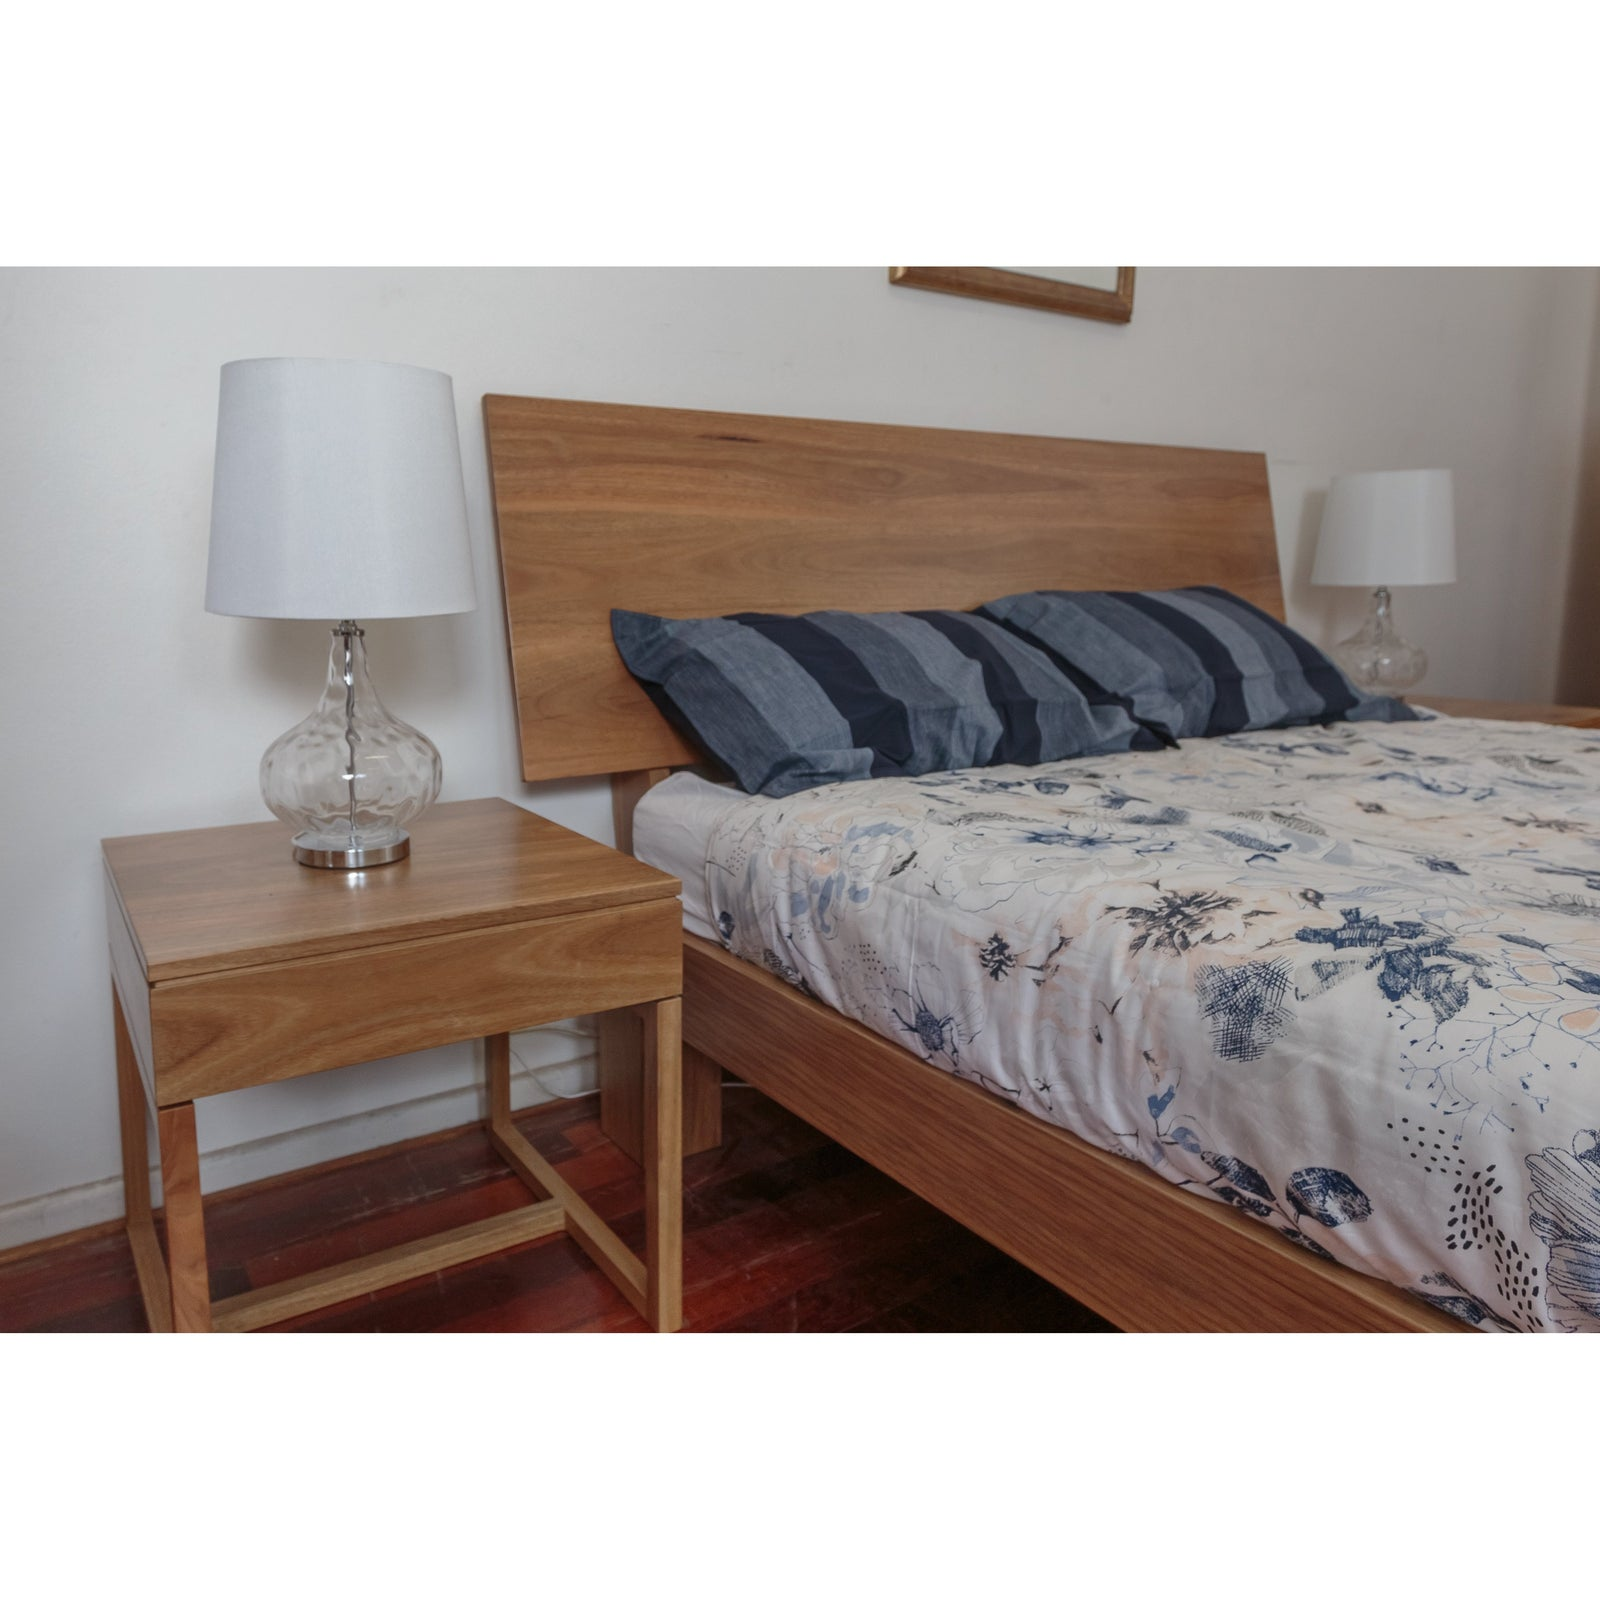 Bunbury Style Timber Bed by Wildwood Designs-beds-Wildwood Designs Furniture